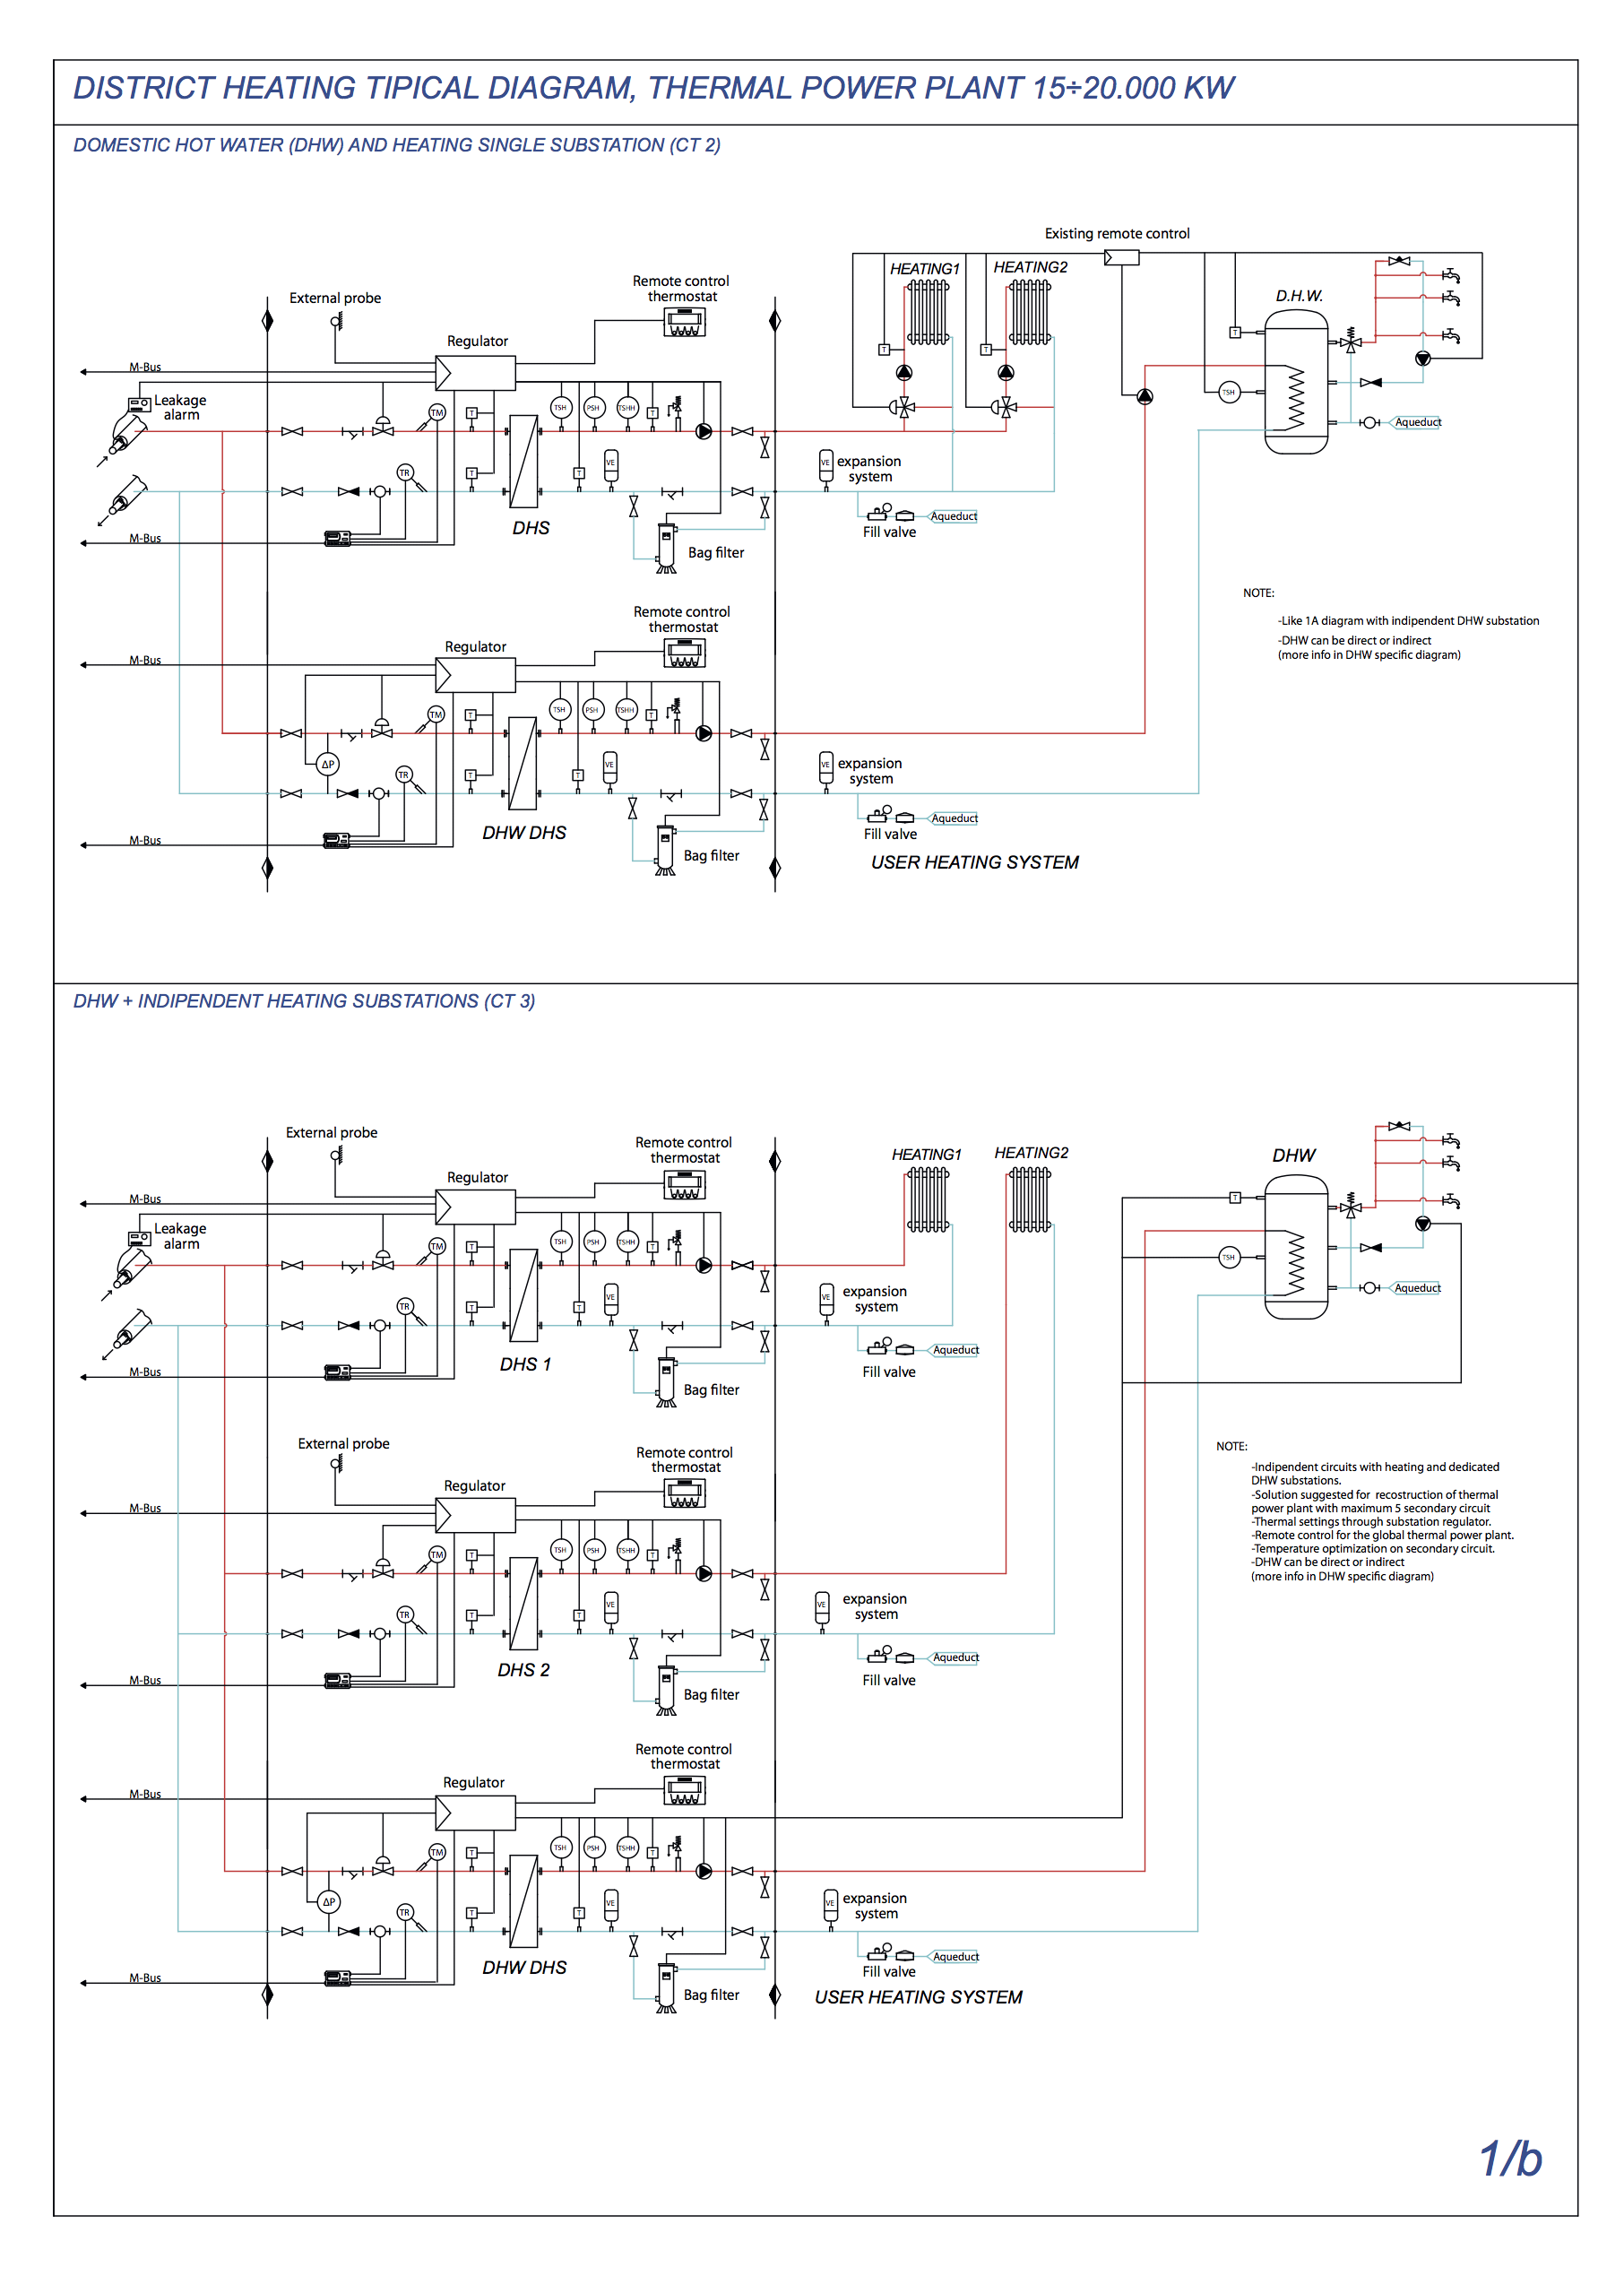 DISTRICT HEATING TIPICAL DIAGRAM, THERMAL POWER PLANT 15÷20.000 KW PT2